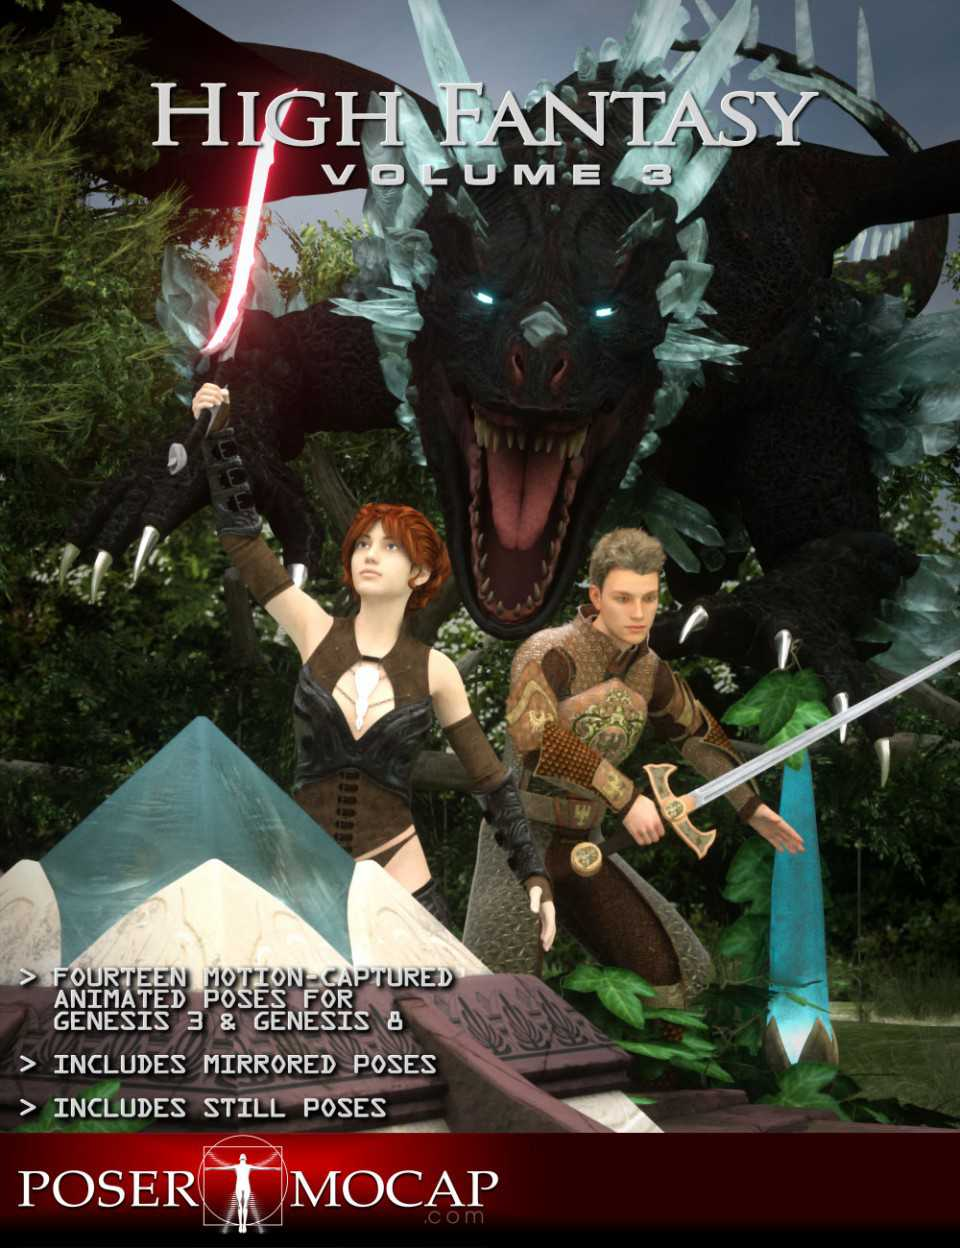 High Fantasy Volume 3 – Fantasy Animations for Genesis 3 and 8